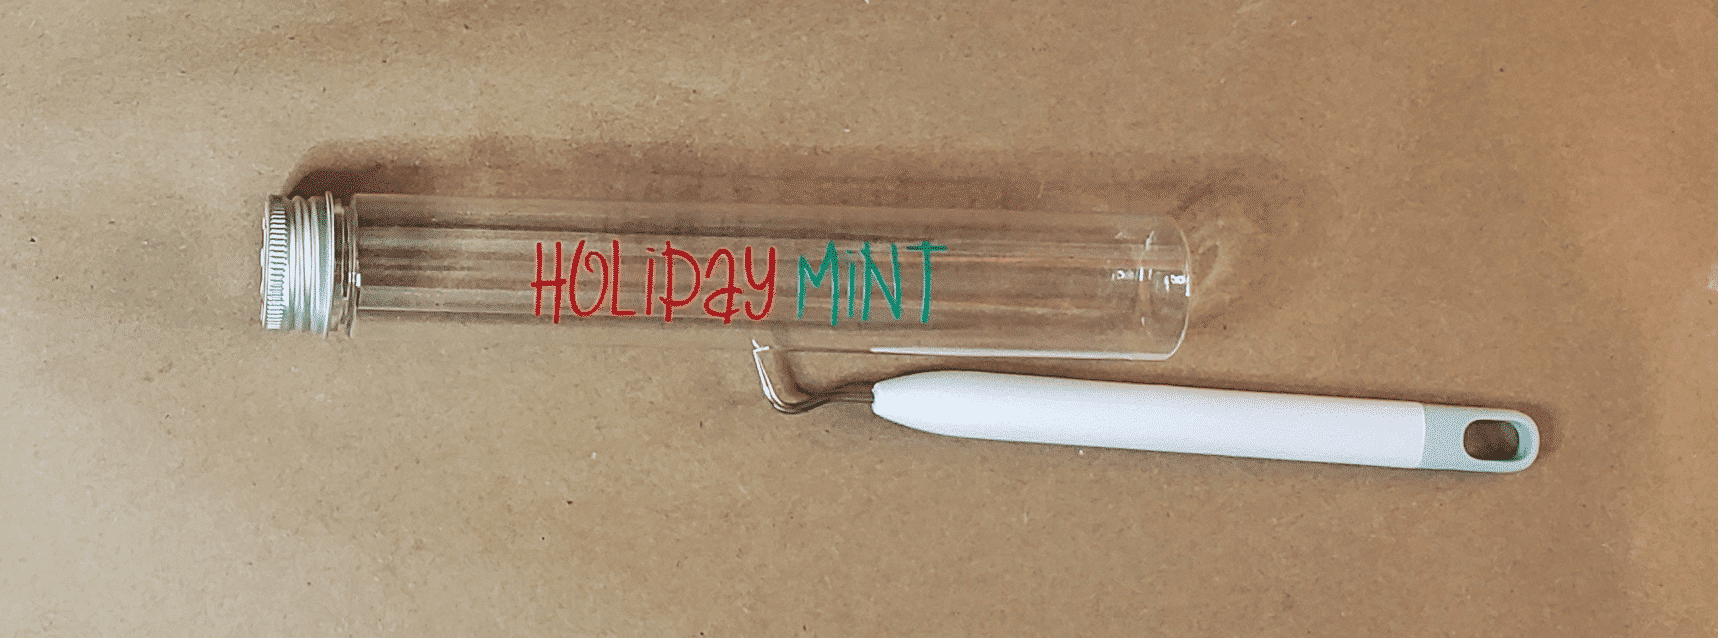 Holiday and Mint lettering on tube